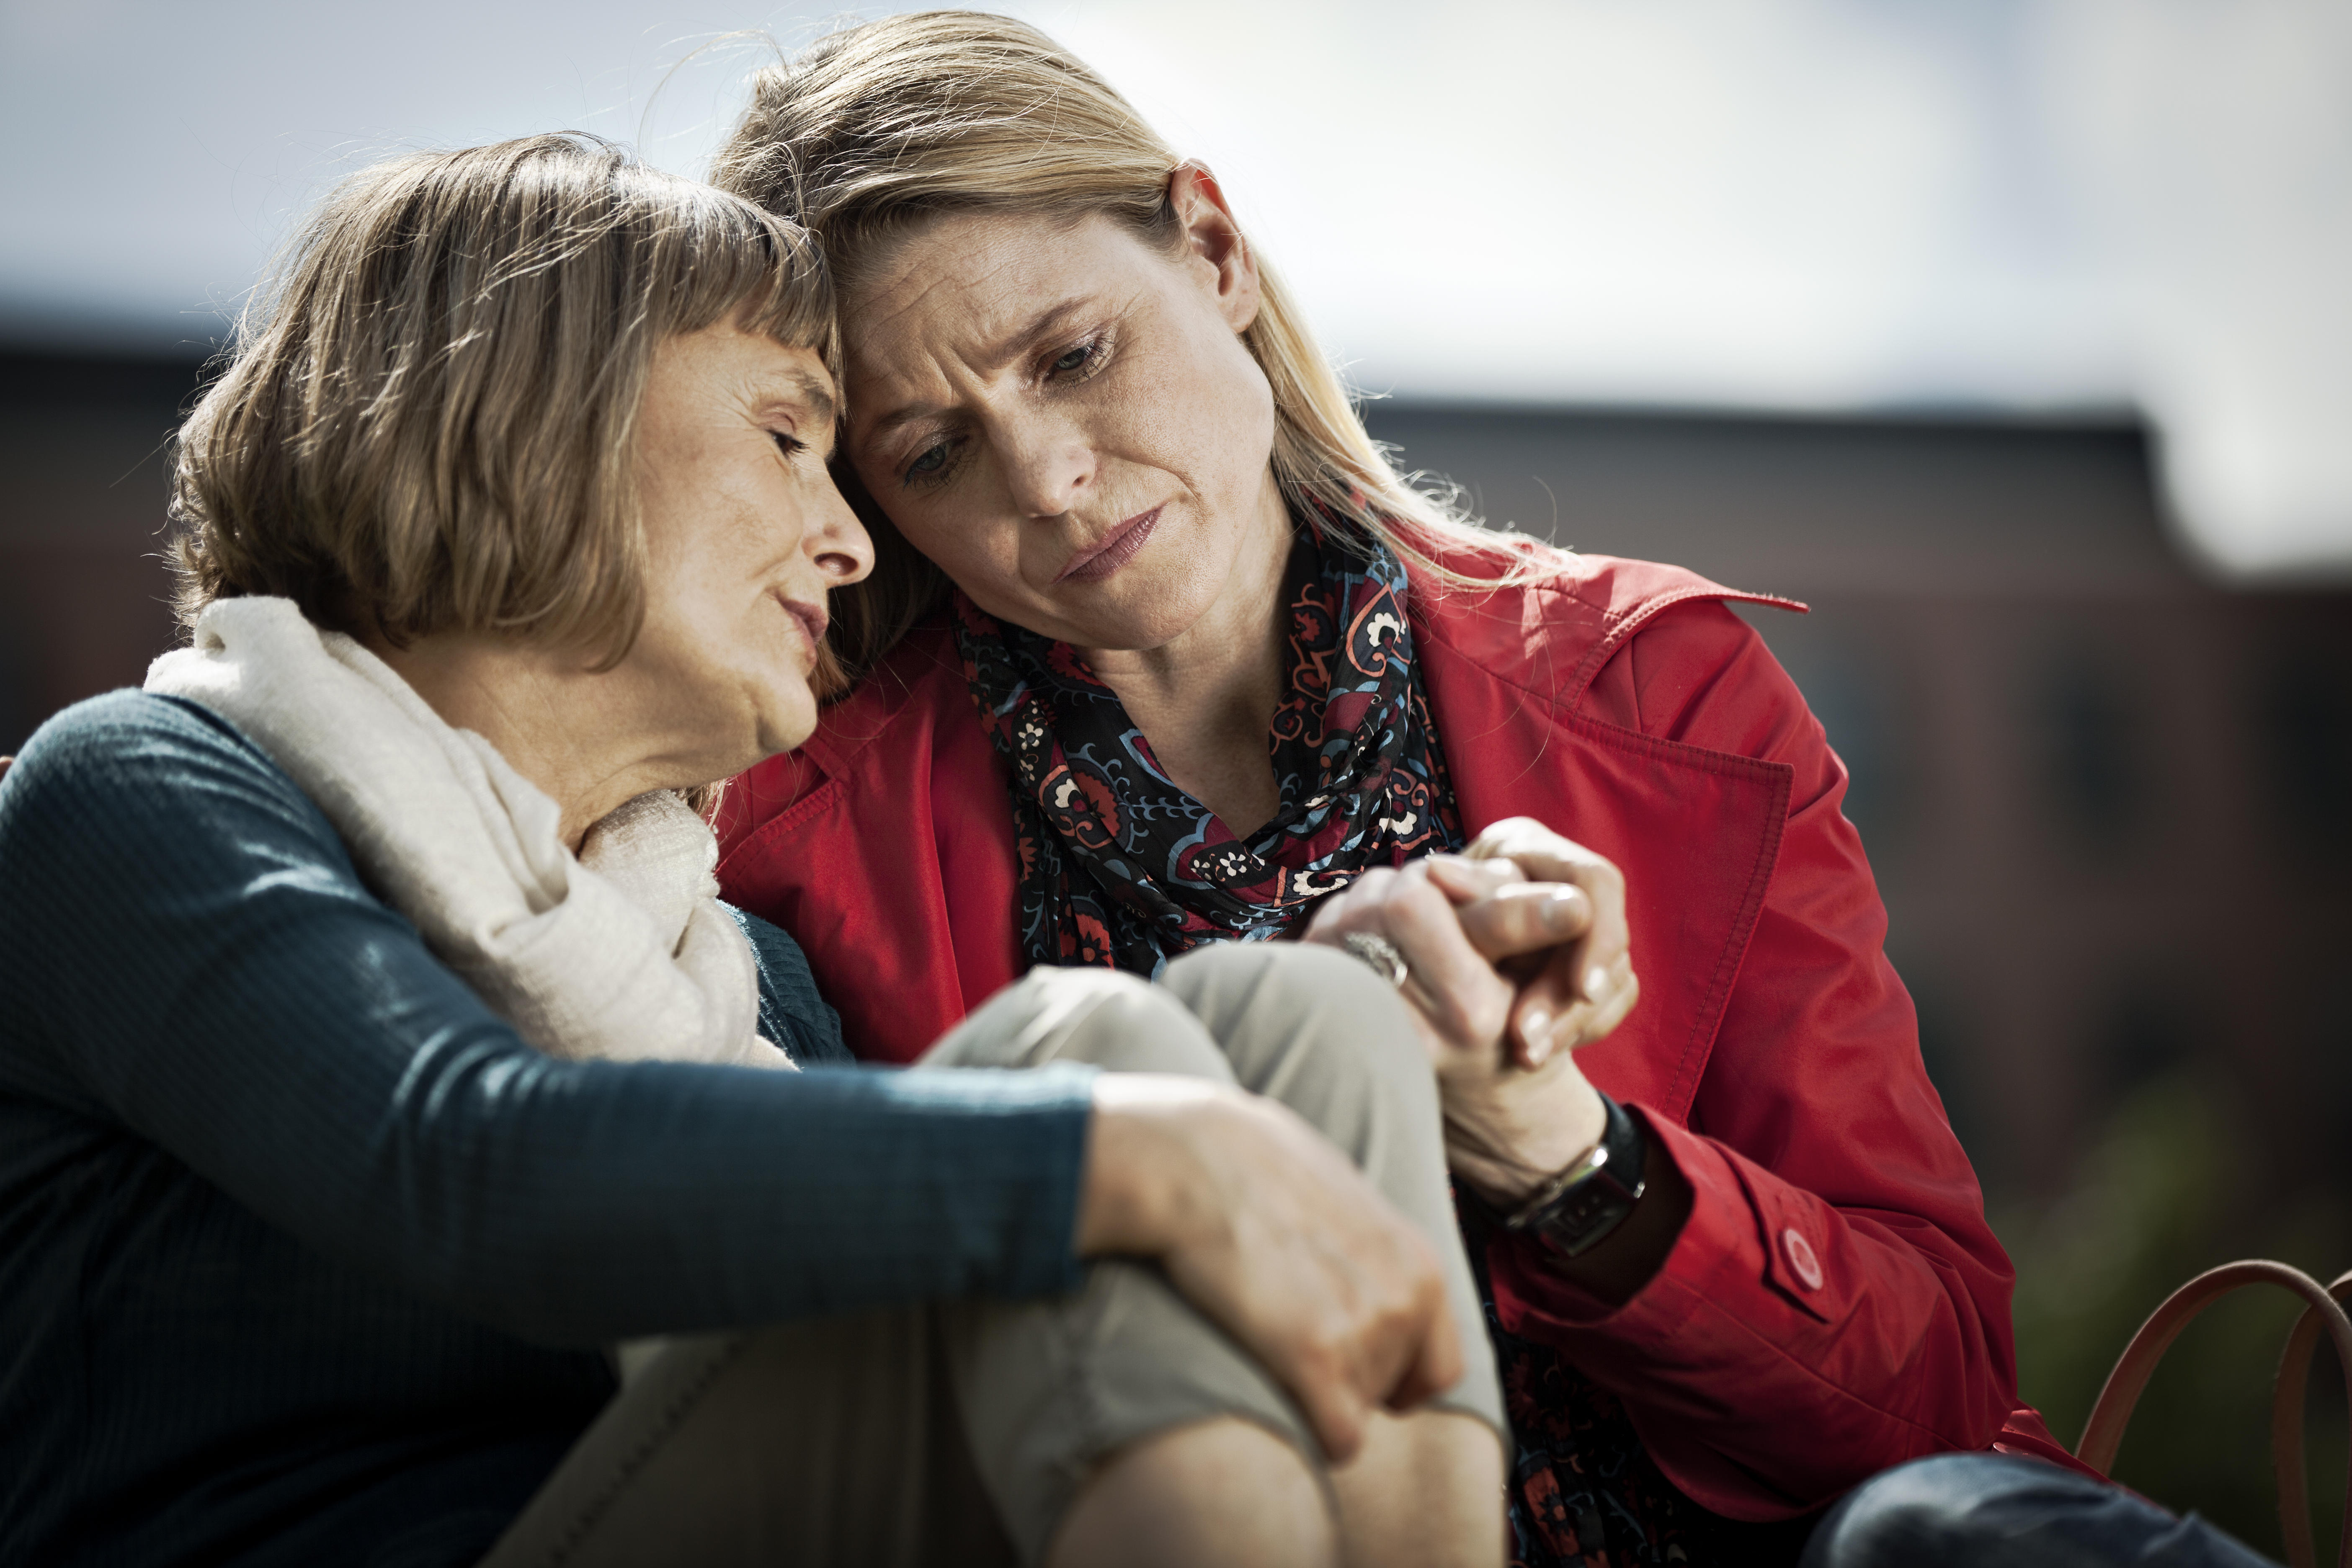 Mother and Daughter sharing an emotional moment on a bench outside